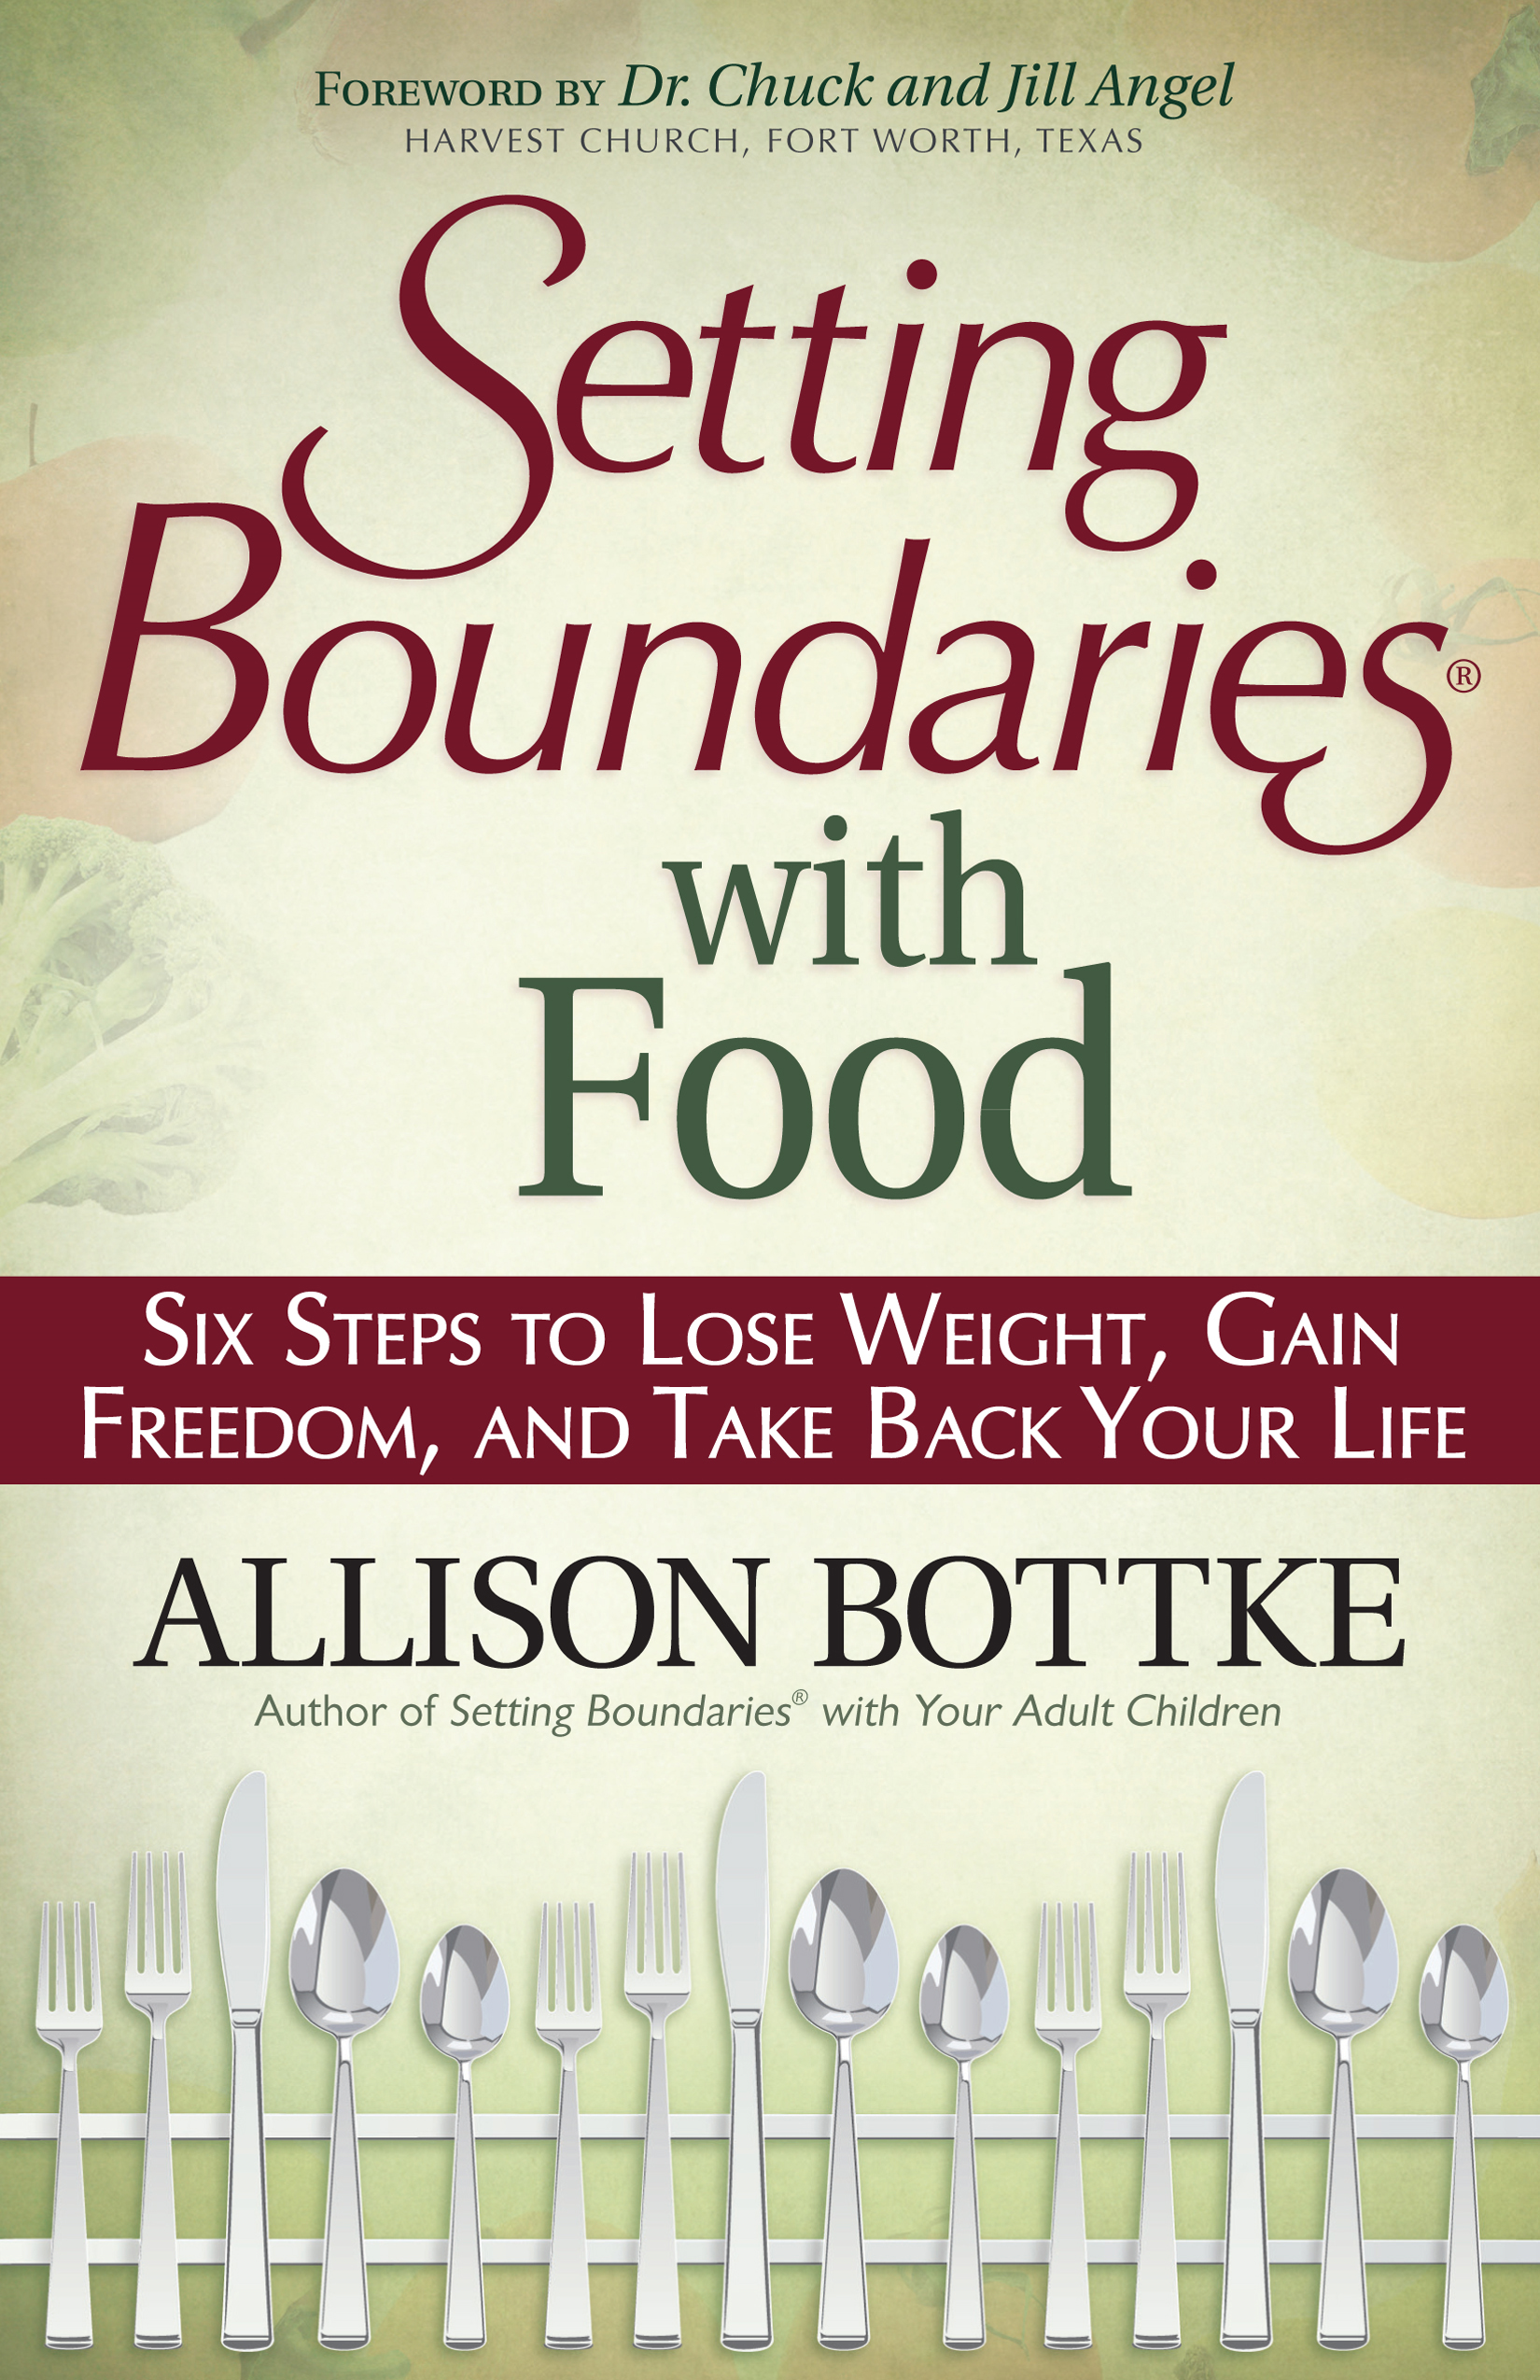 Setting Boundaries® with Food